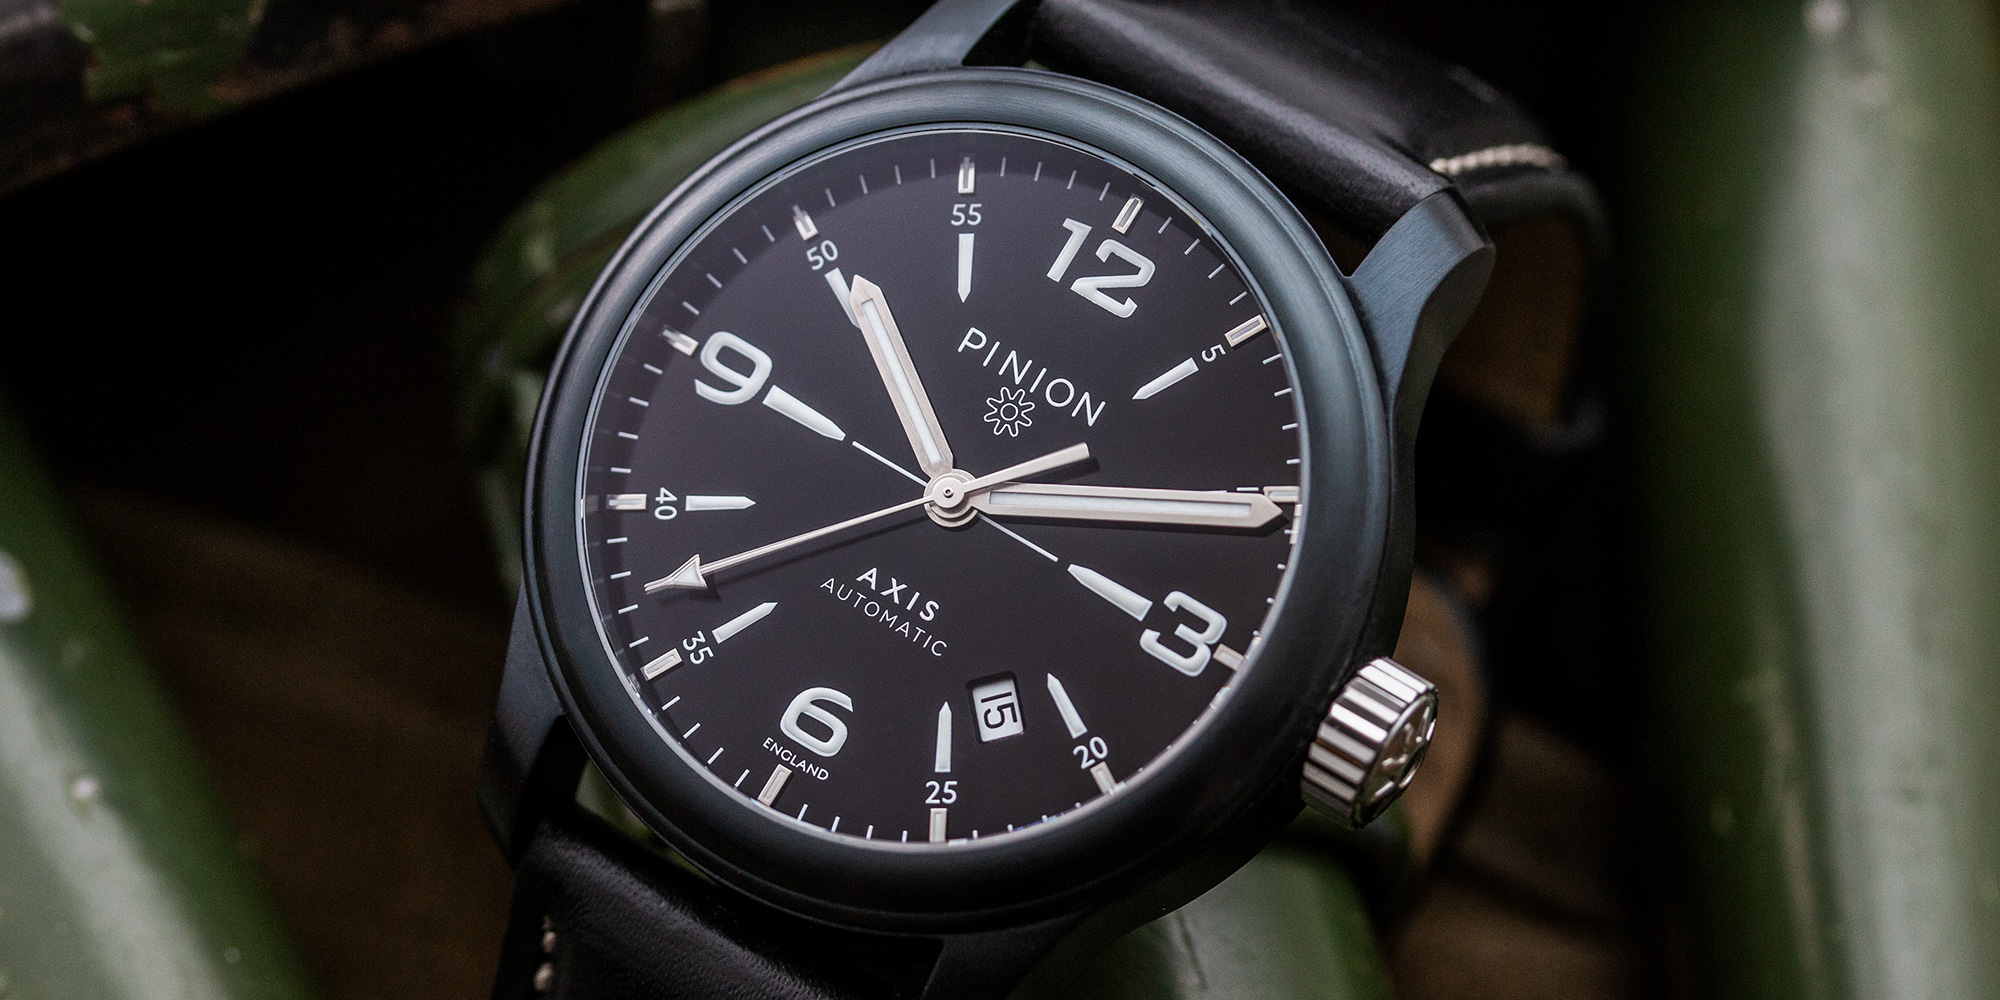 pinion-axis-ii-black-dlc-watch-003